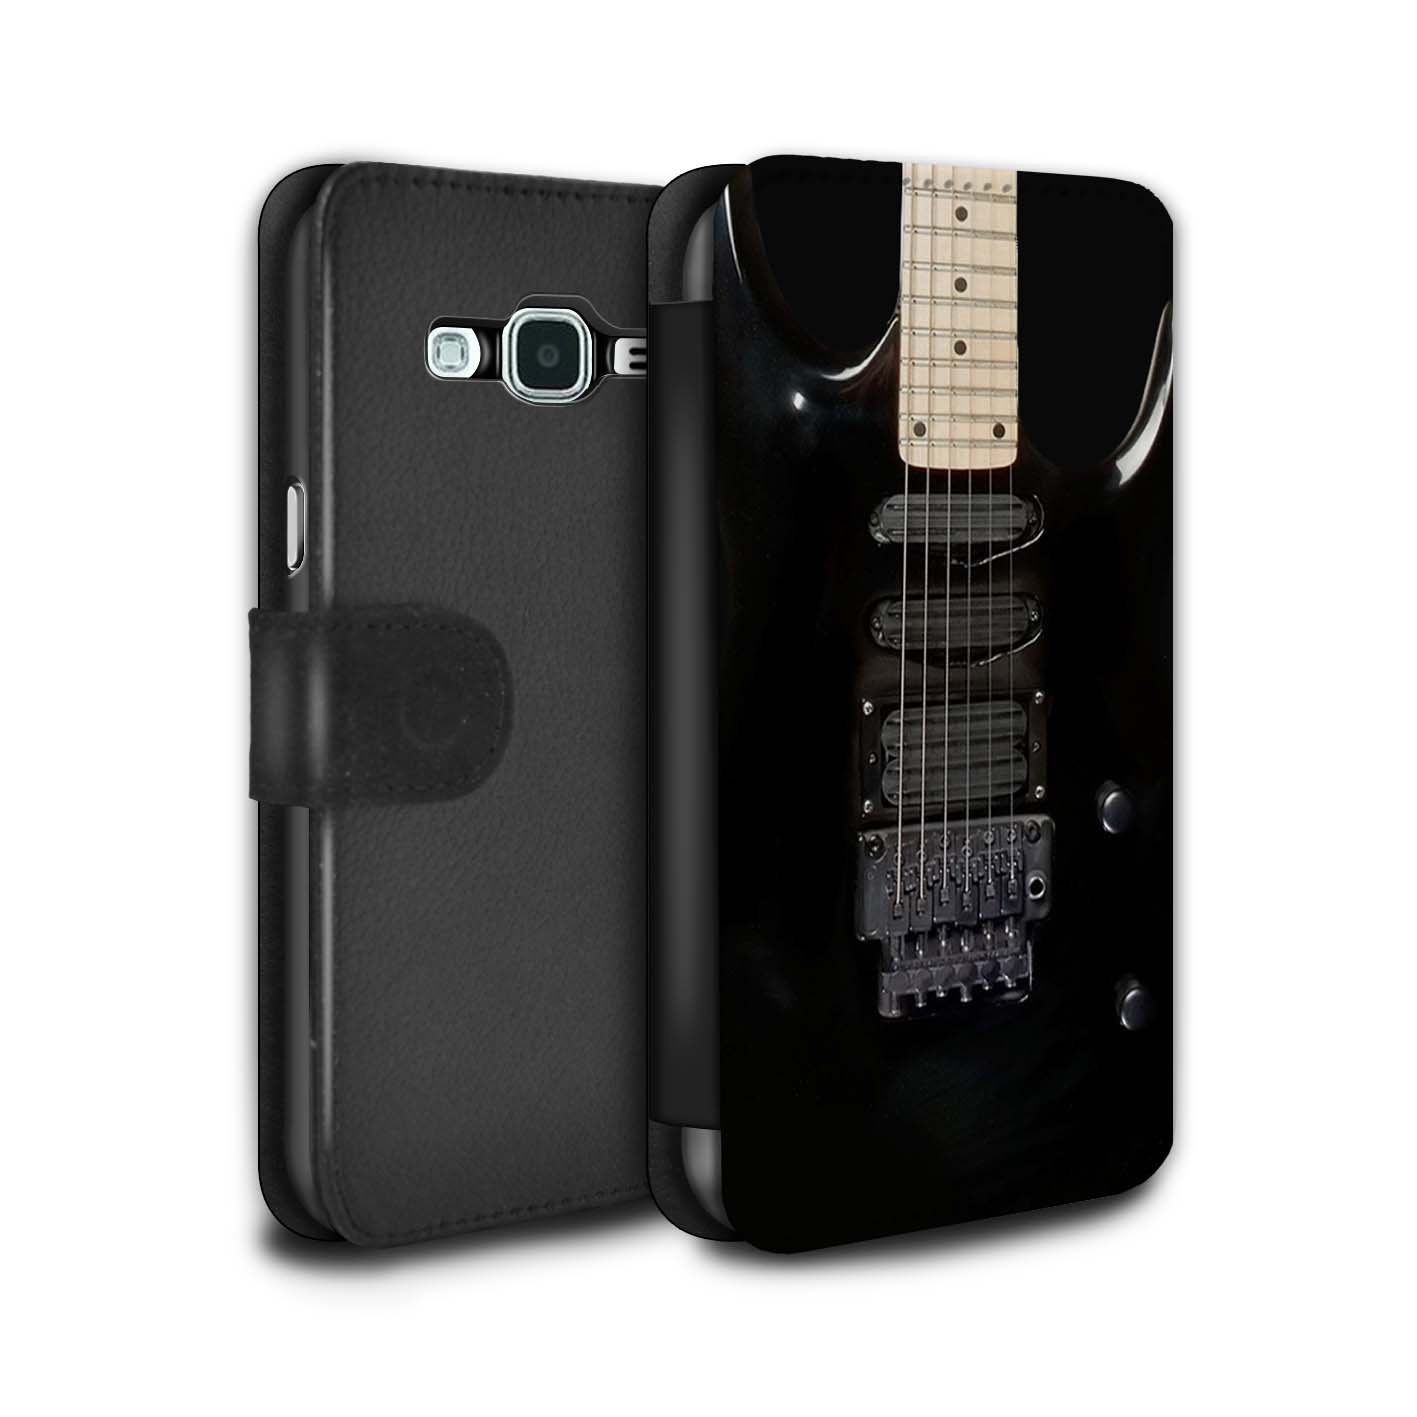 STUFF4-PU-Leather-Case-Cover-Wallet-for-Samsung-Galaxy-J3-Guitar